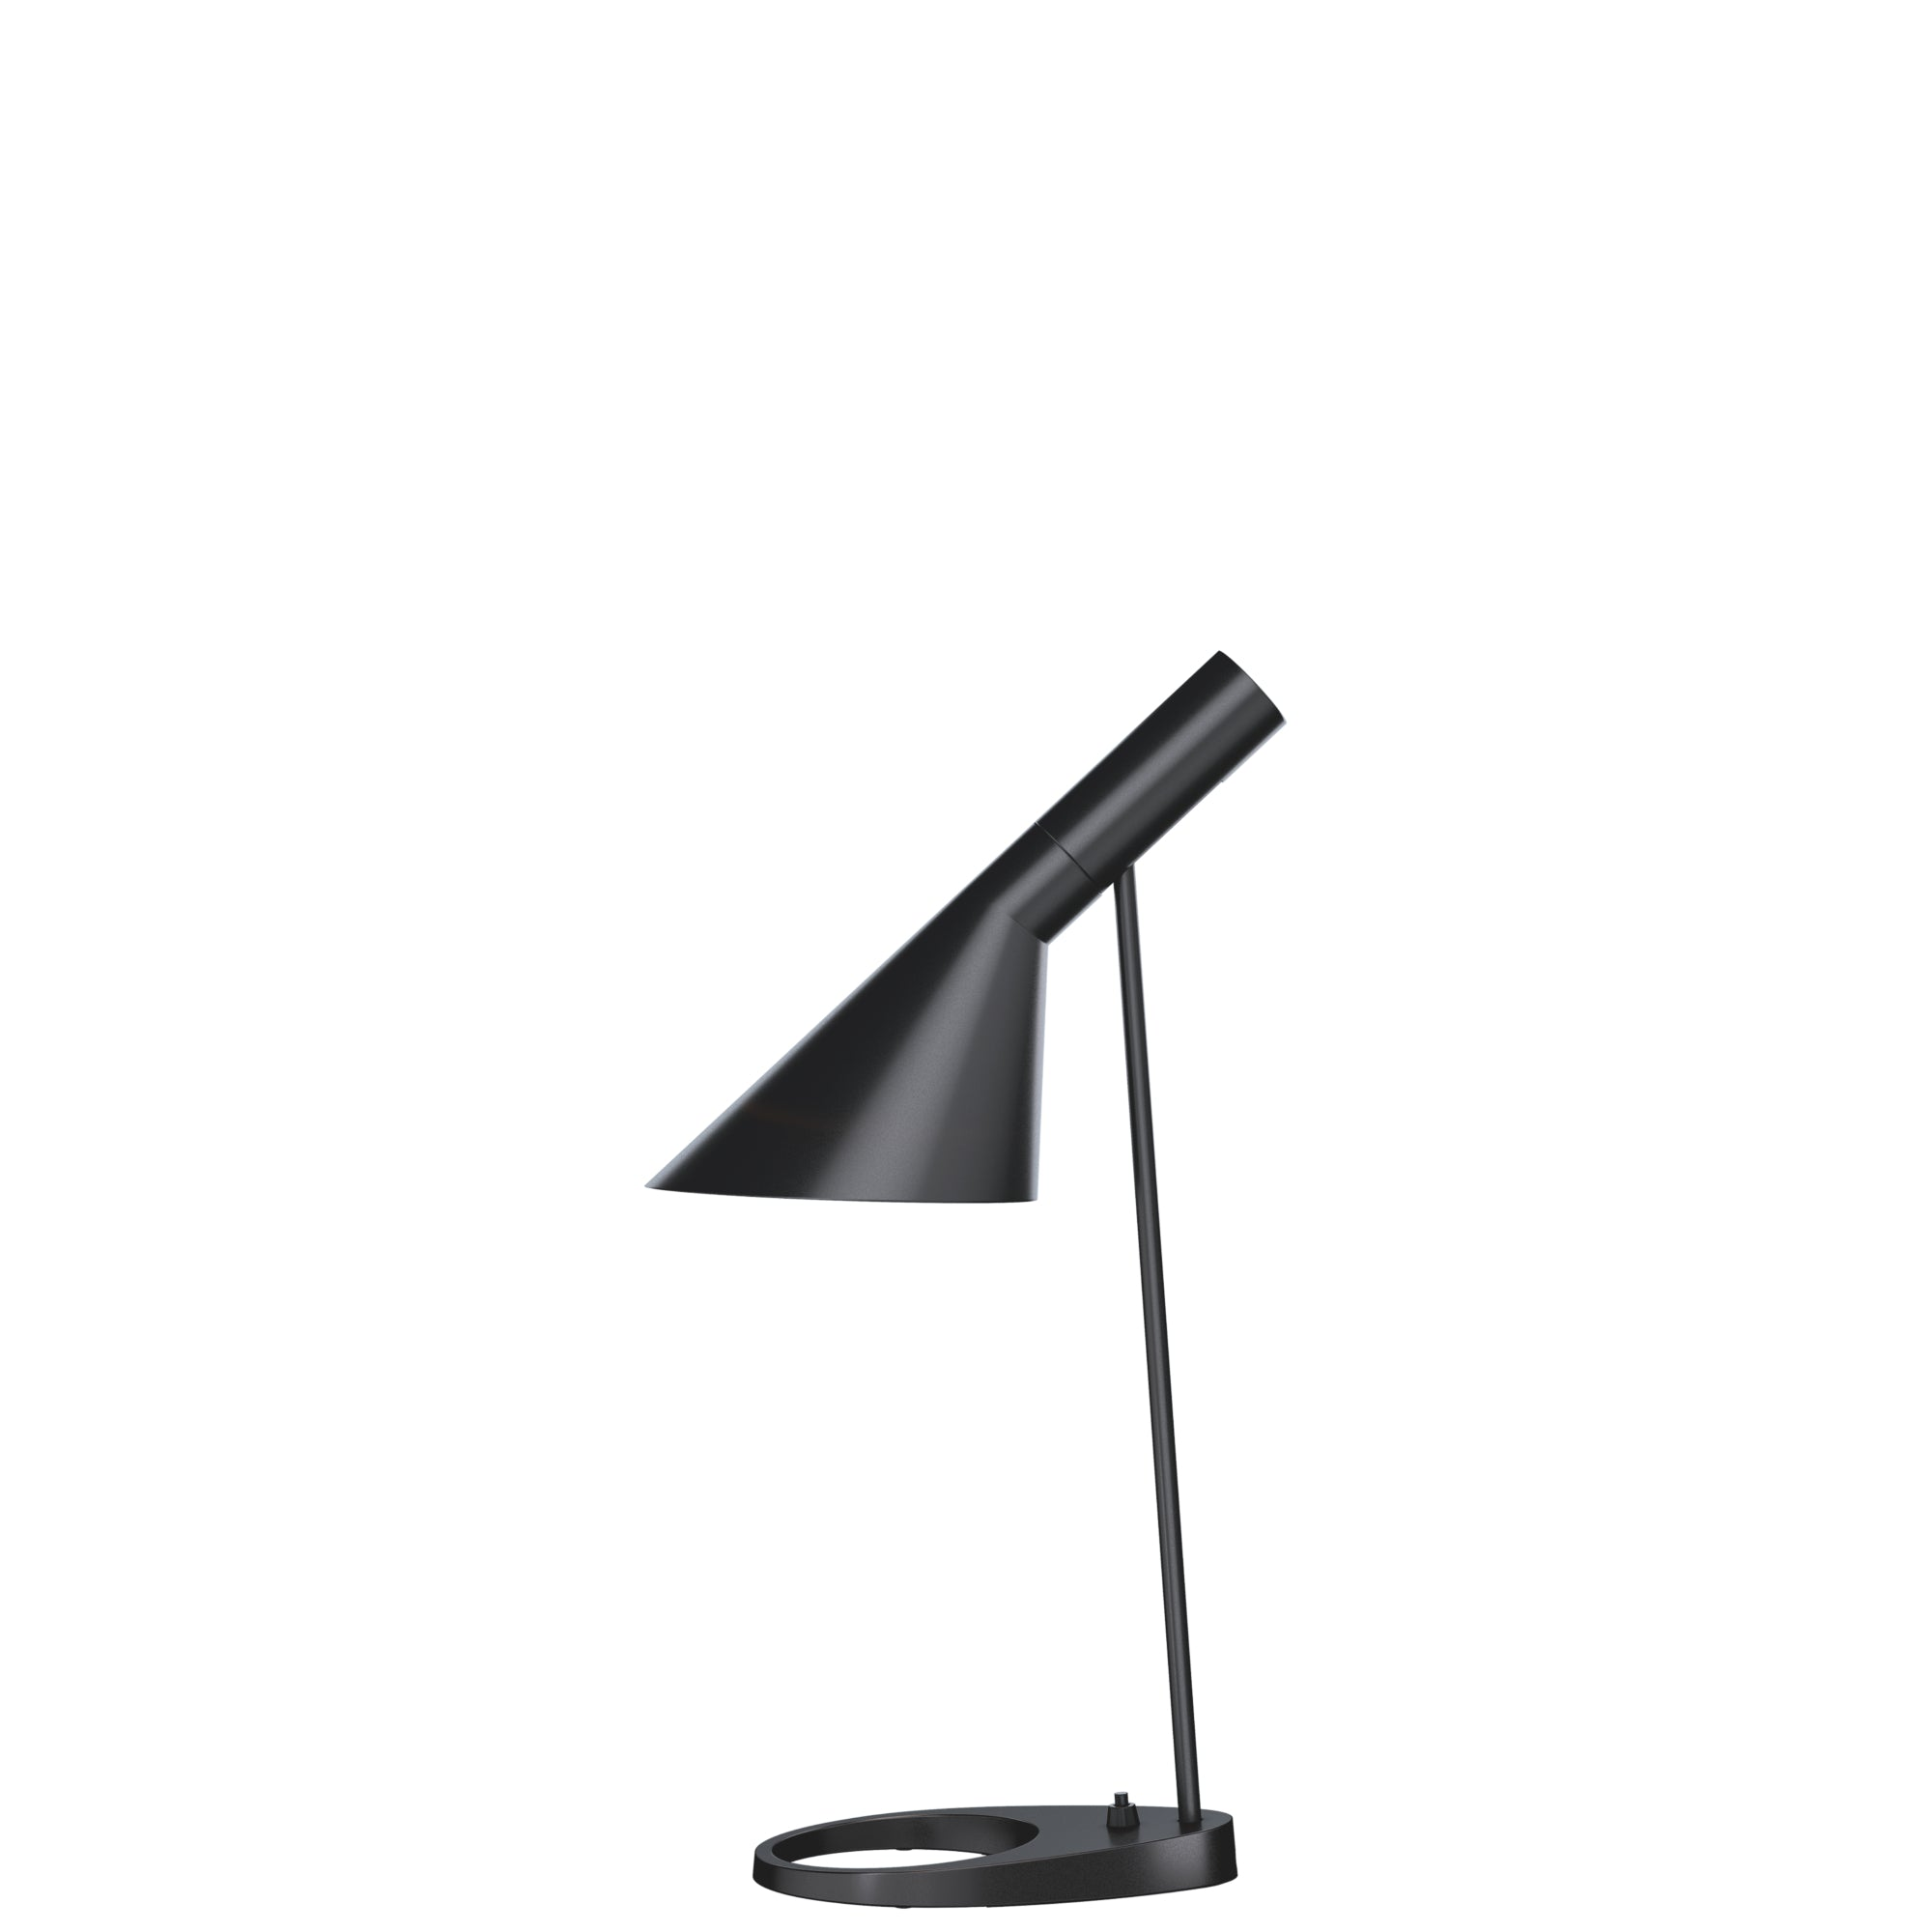 Louis Poulsen AJ Table Lamp by Arne Jacobsen Black